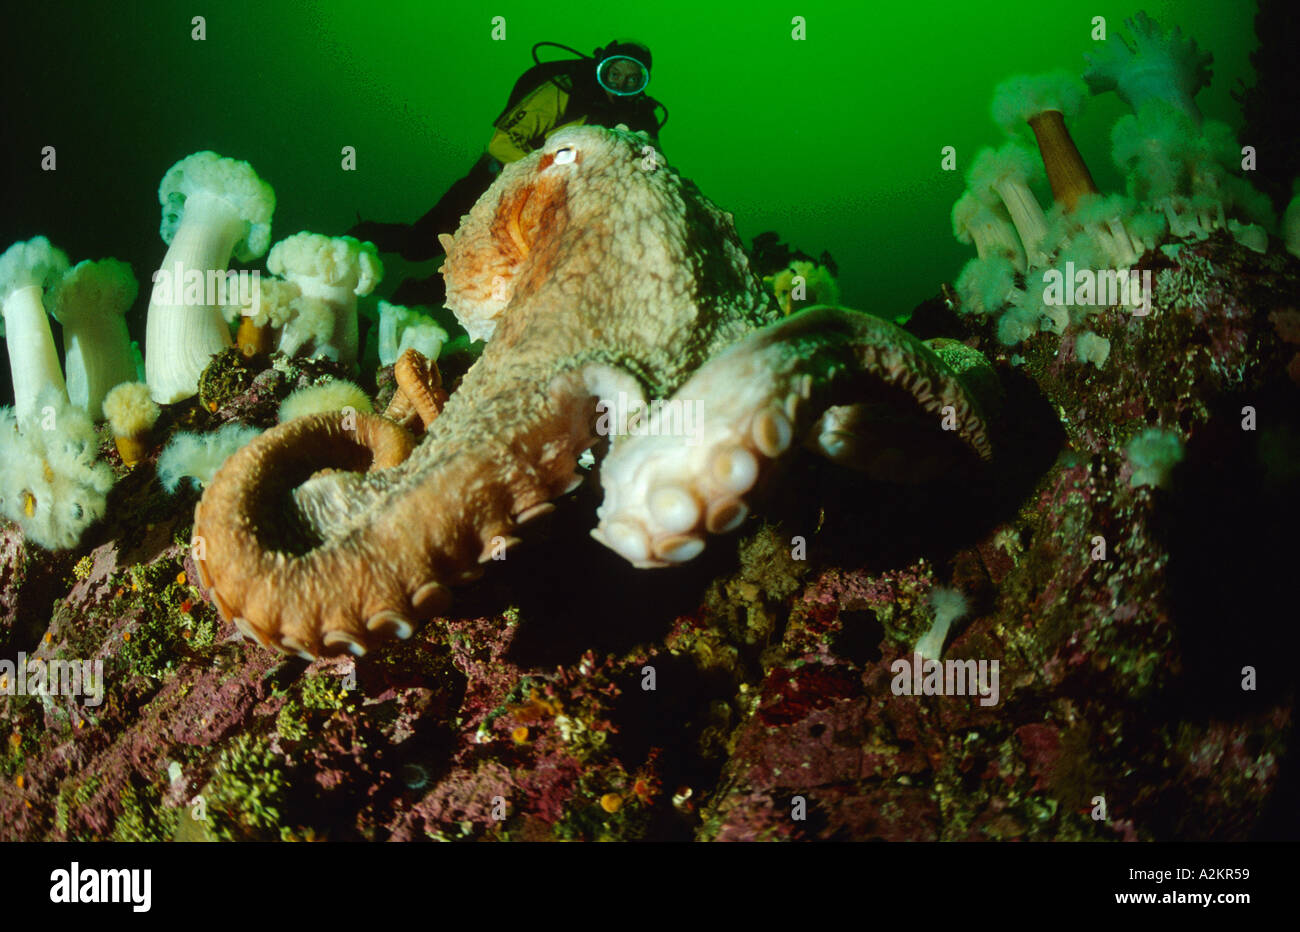 Giant pacific octopus with scuba diver, Octopus dofleini,  British Columbia, Vancouver island, Canada Pacific - Stock Image